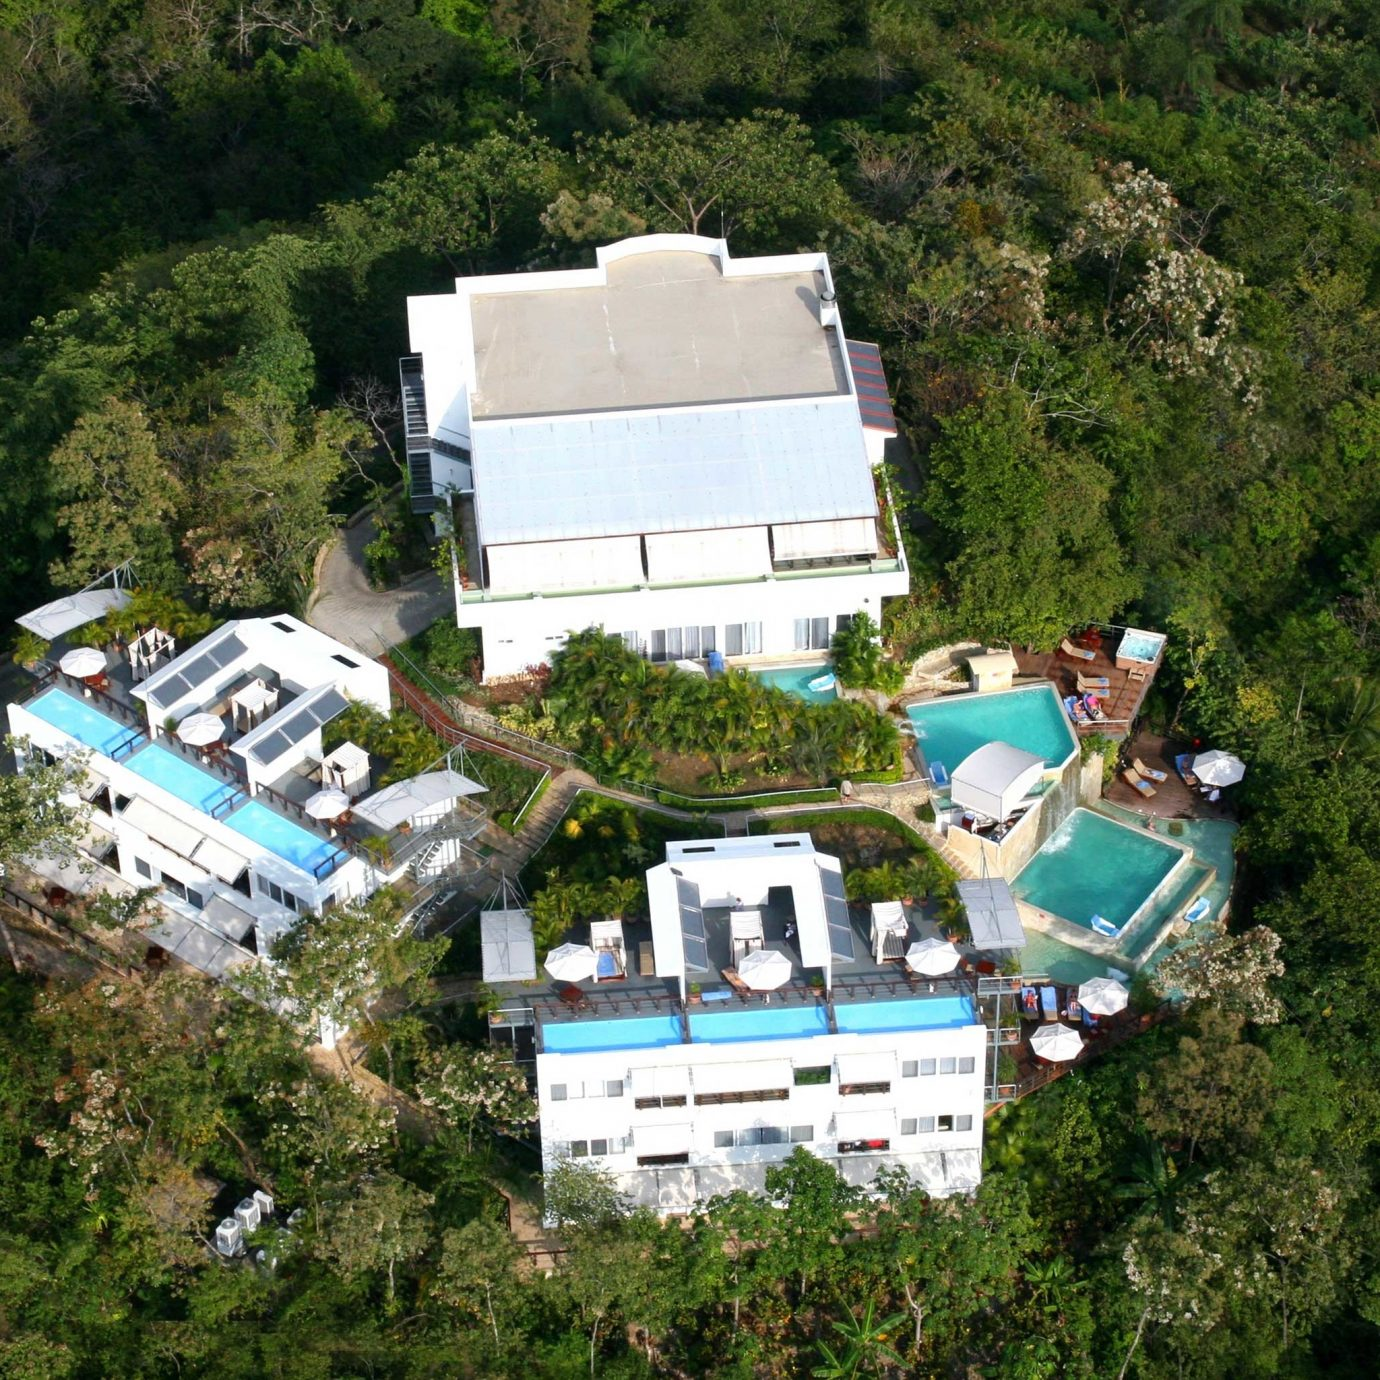 Exterior Grounds Jungle tree geological phenomenon house aerial photography residential area Village cottage trailer